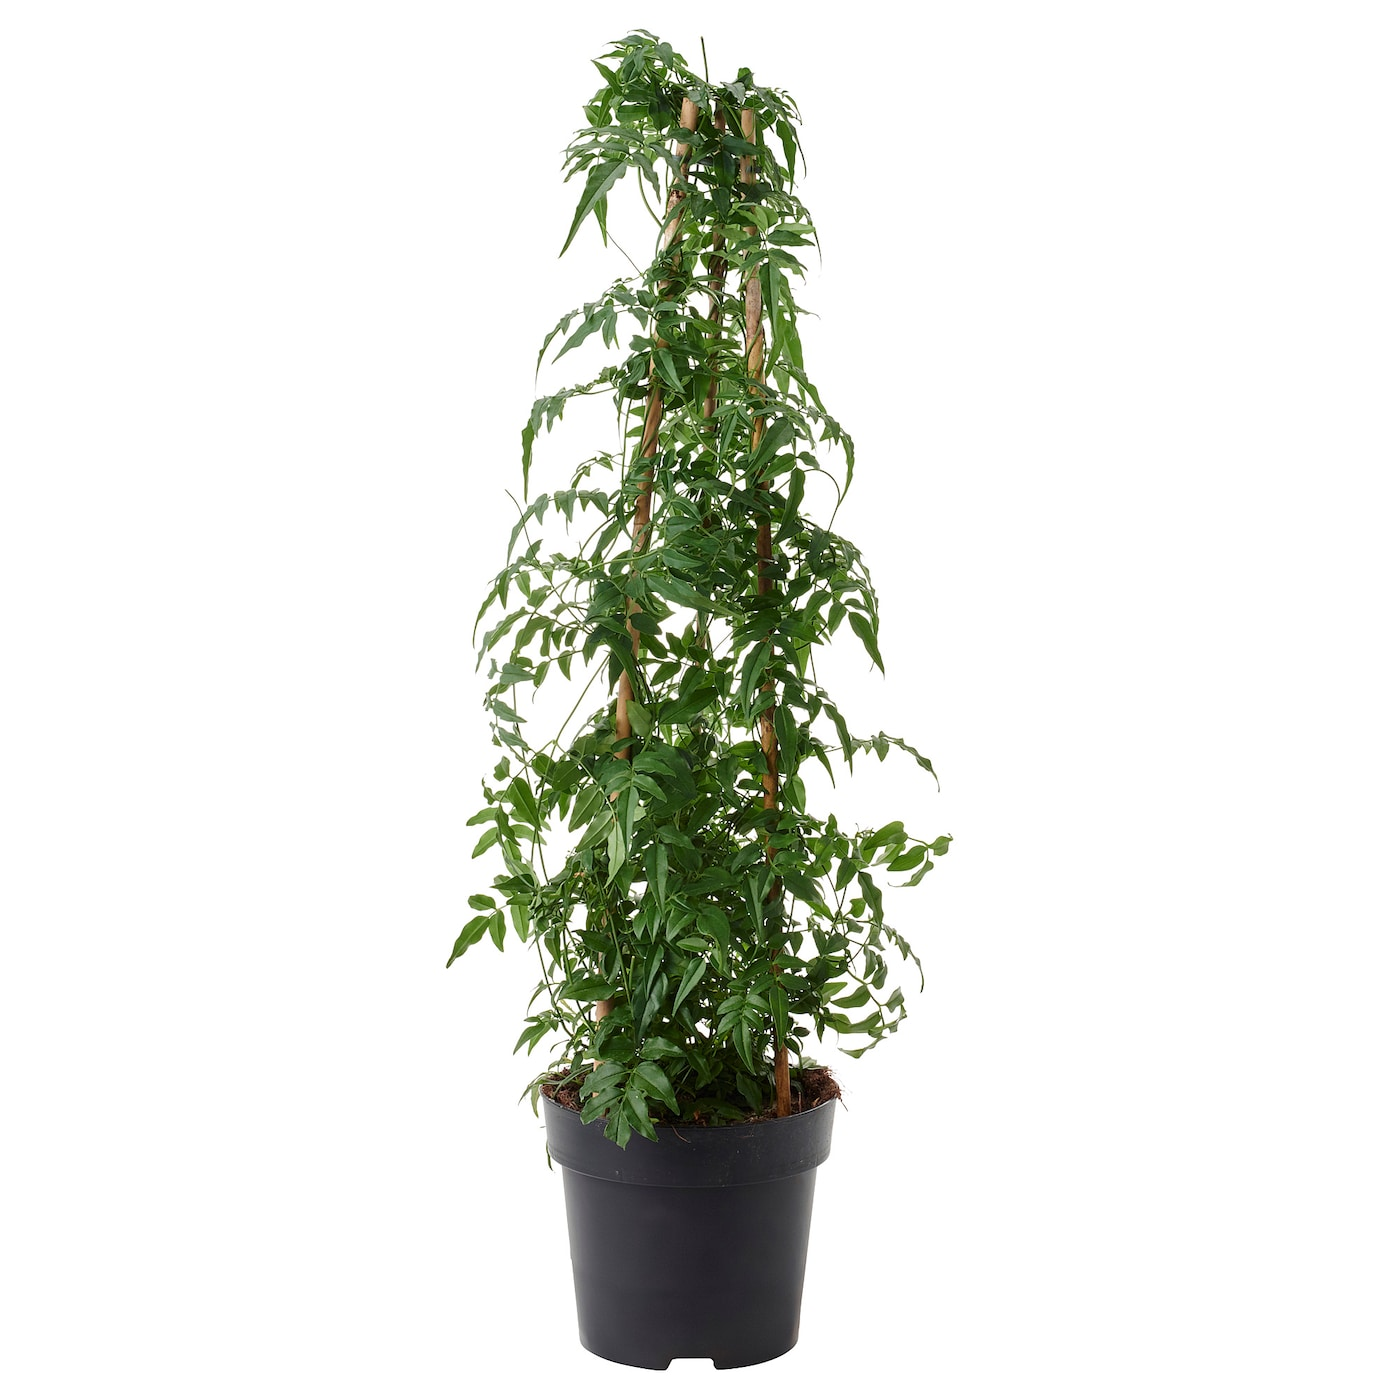 jasminum plante en pot jasmin 17 cm ikea. Black Bedroom Furniture Sets. Home Design Ideas